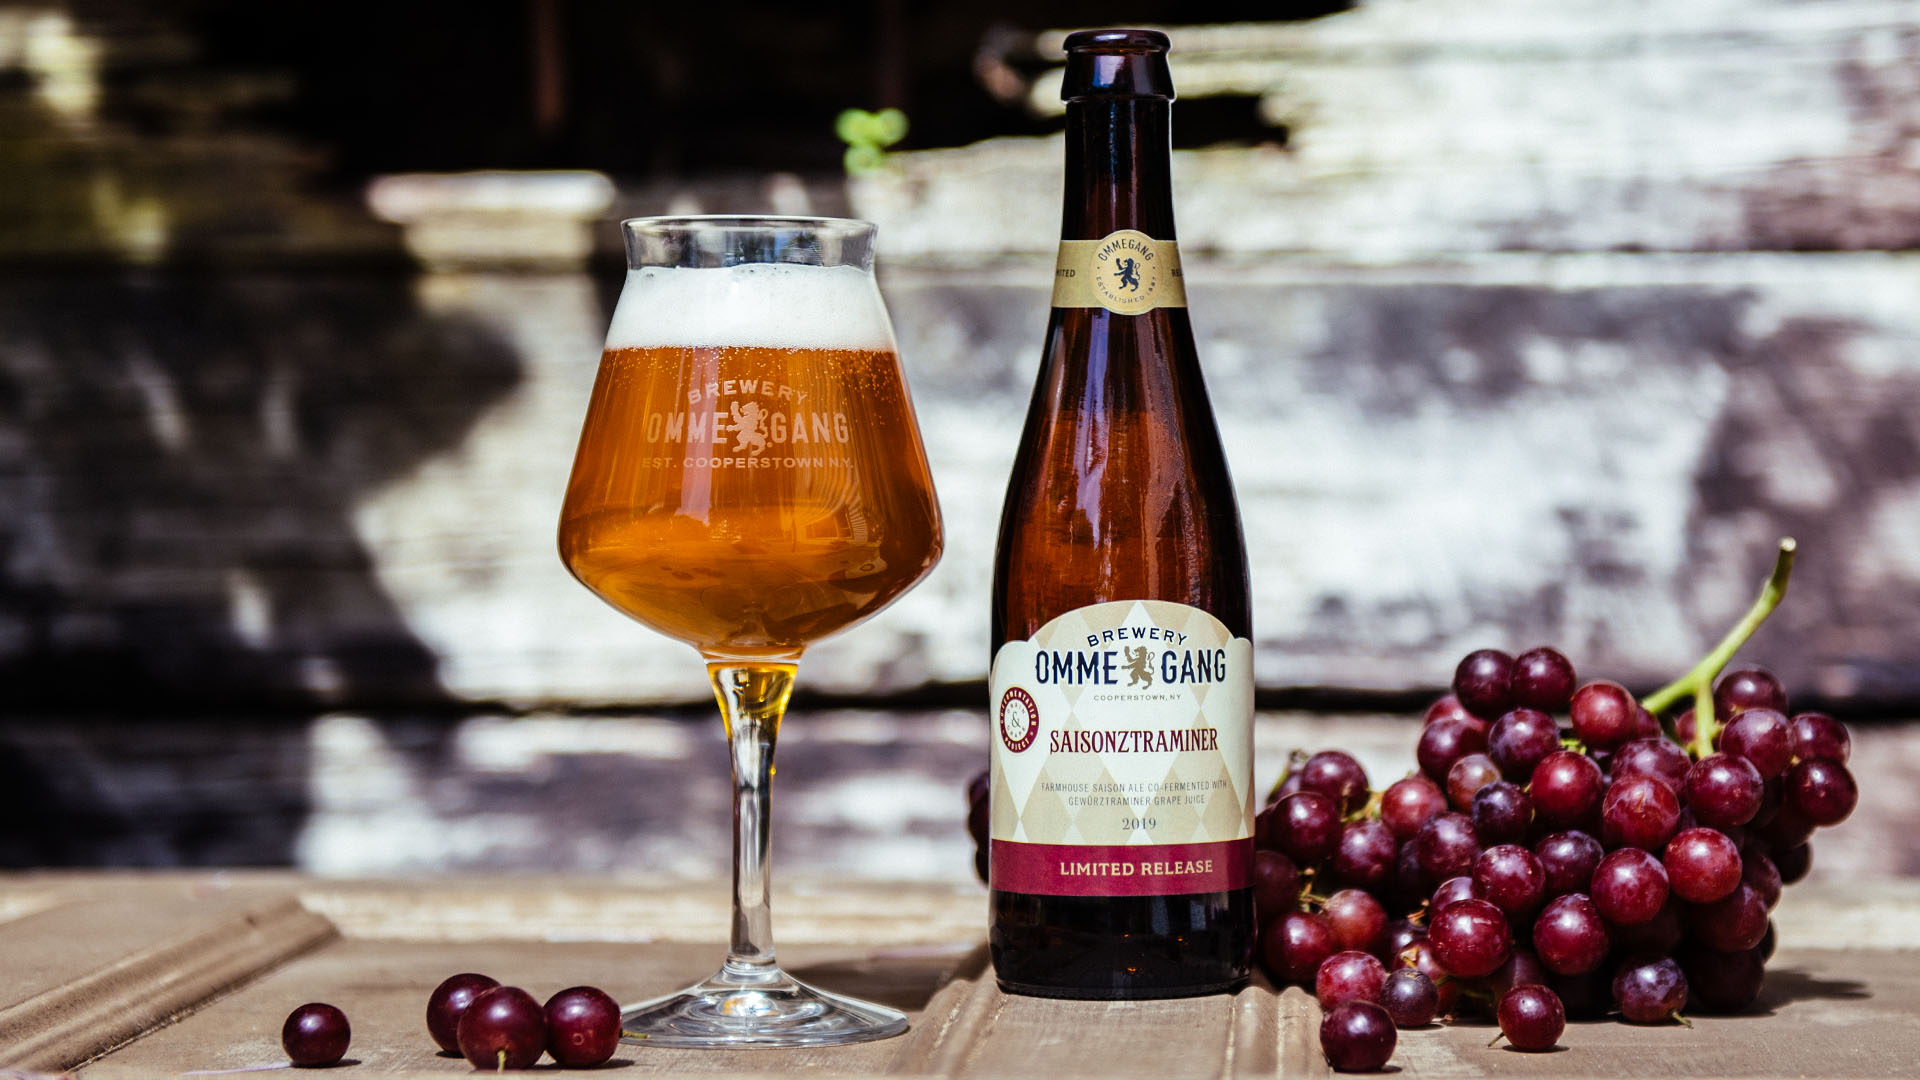 image of Saisonztraminer courtesy of Brewery Ommegang